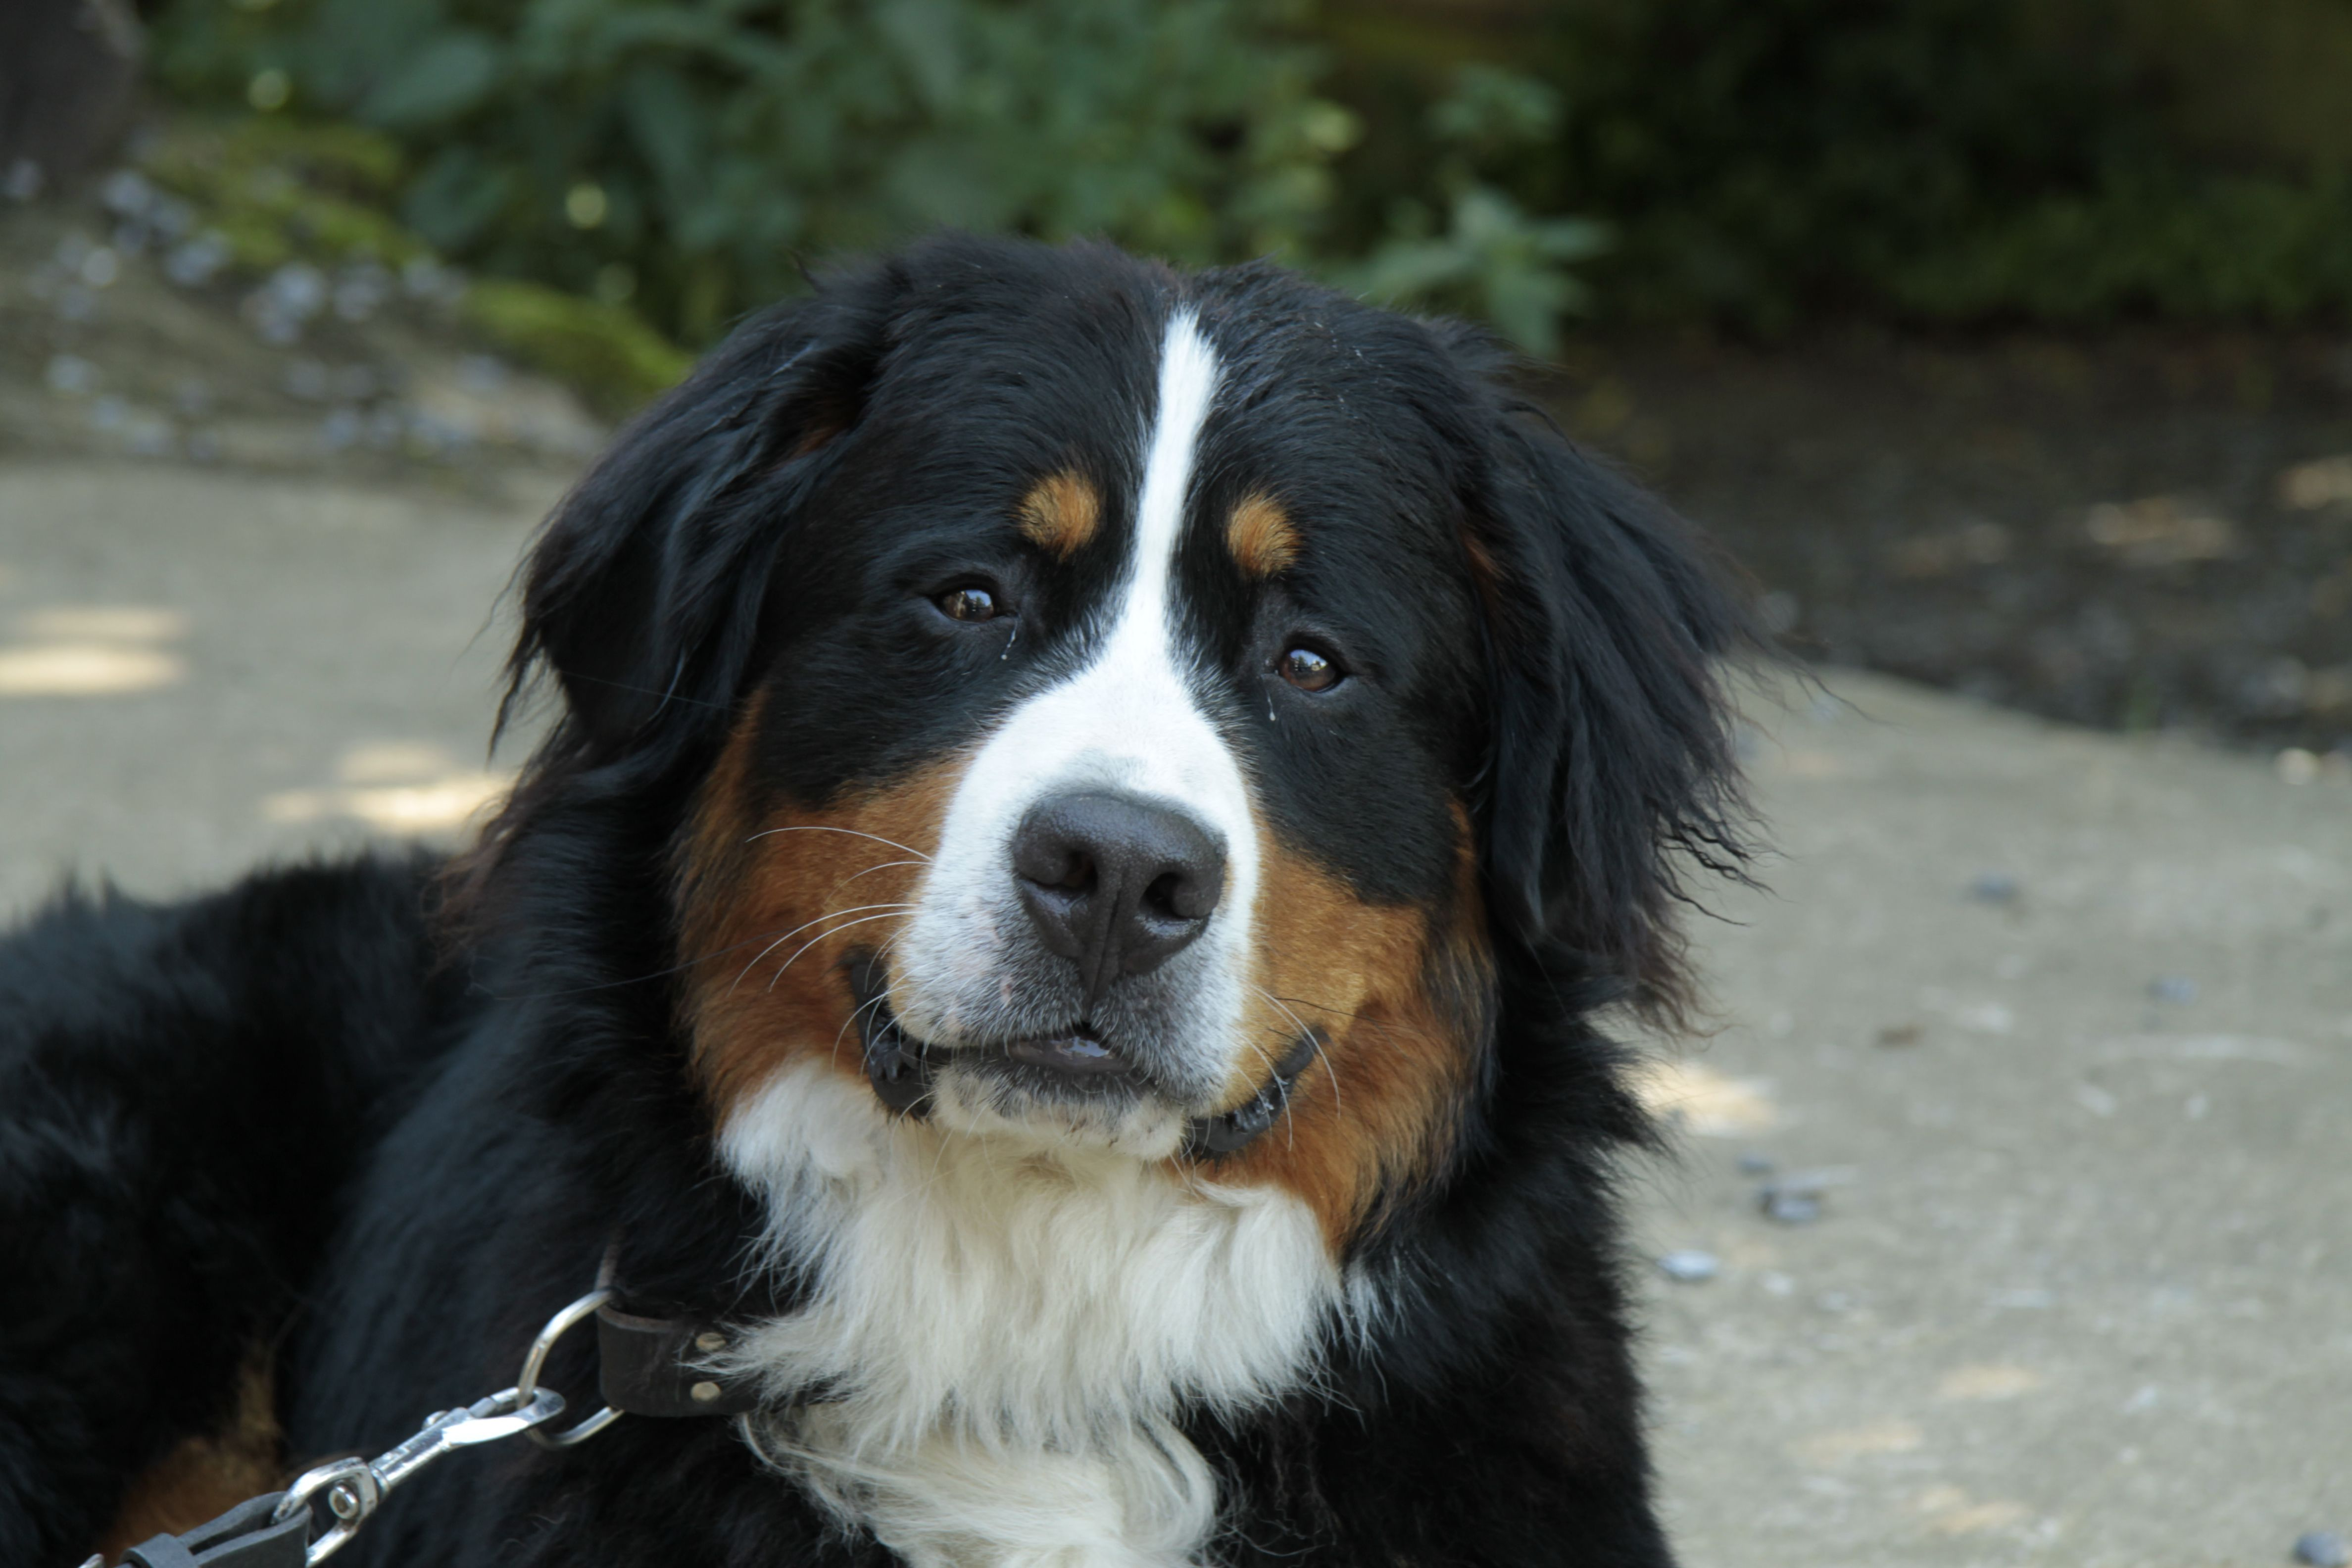 Pin By Tr On Bernese Mountain Dogs Bernese Mountain Dog Dog Friends Mountain Dogs